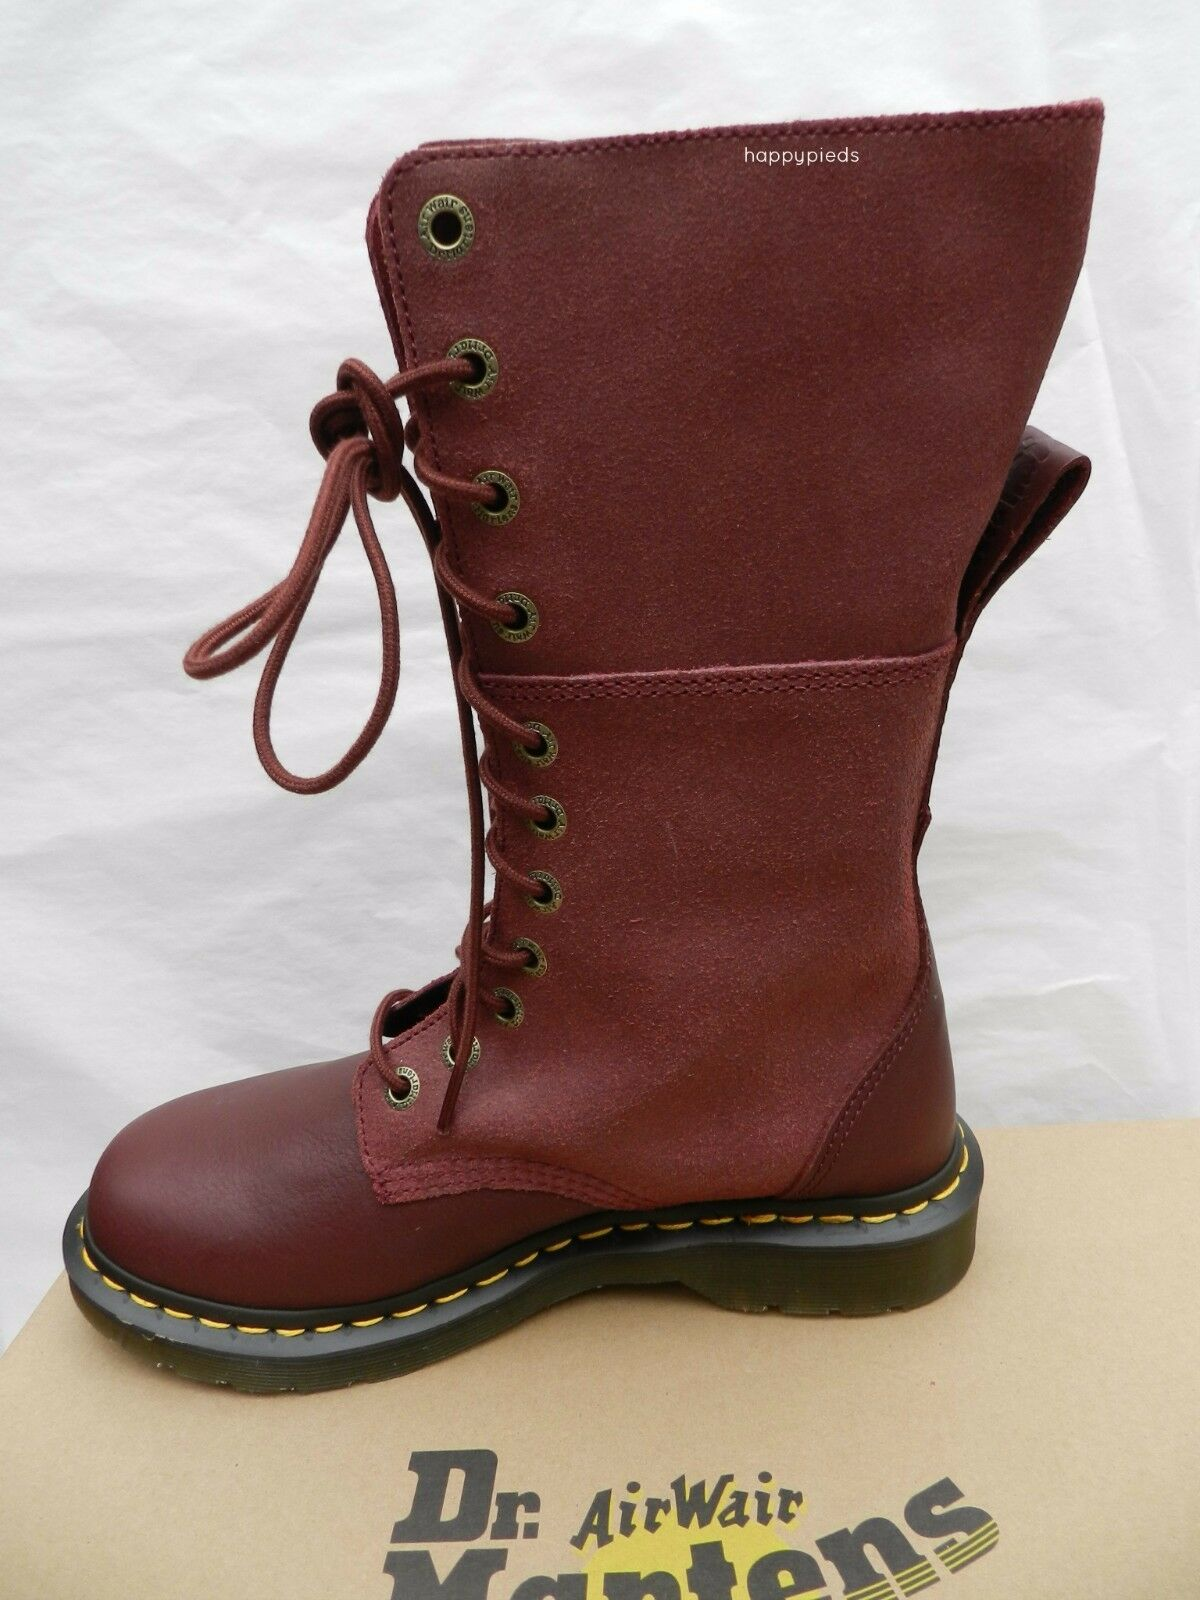 Dr martens hazil virginia mujer 41 botas cherry rojo 20346600 uk7 new